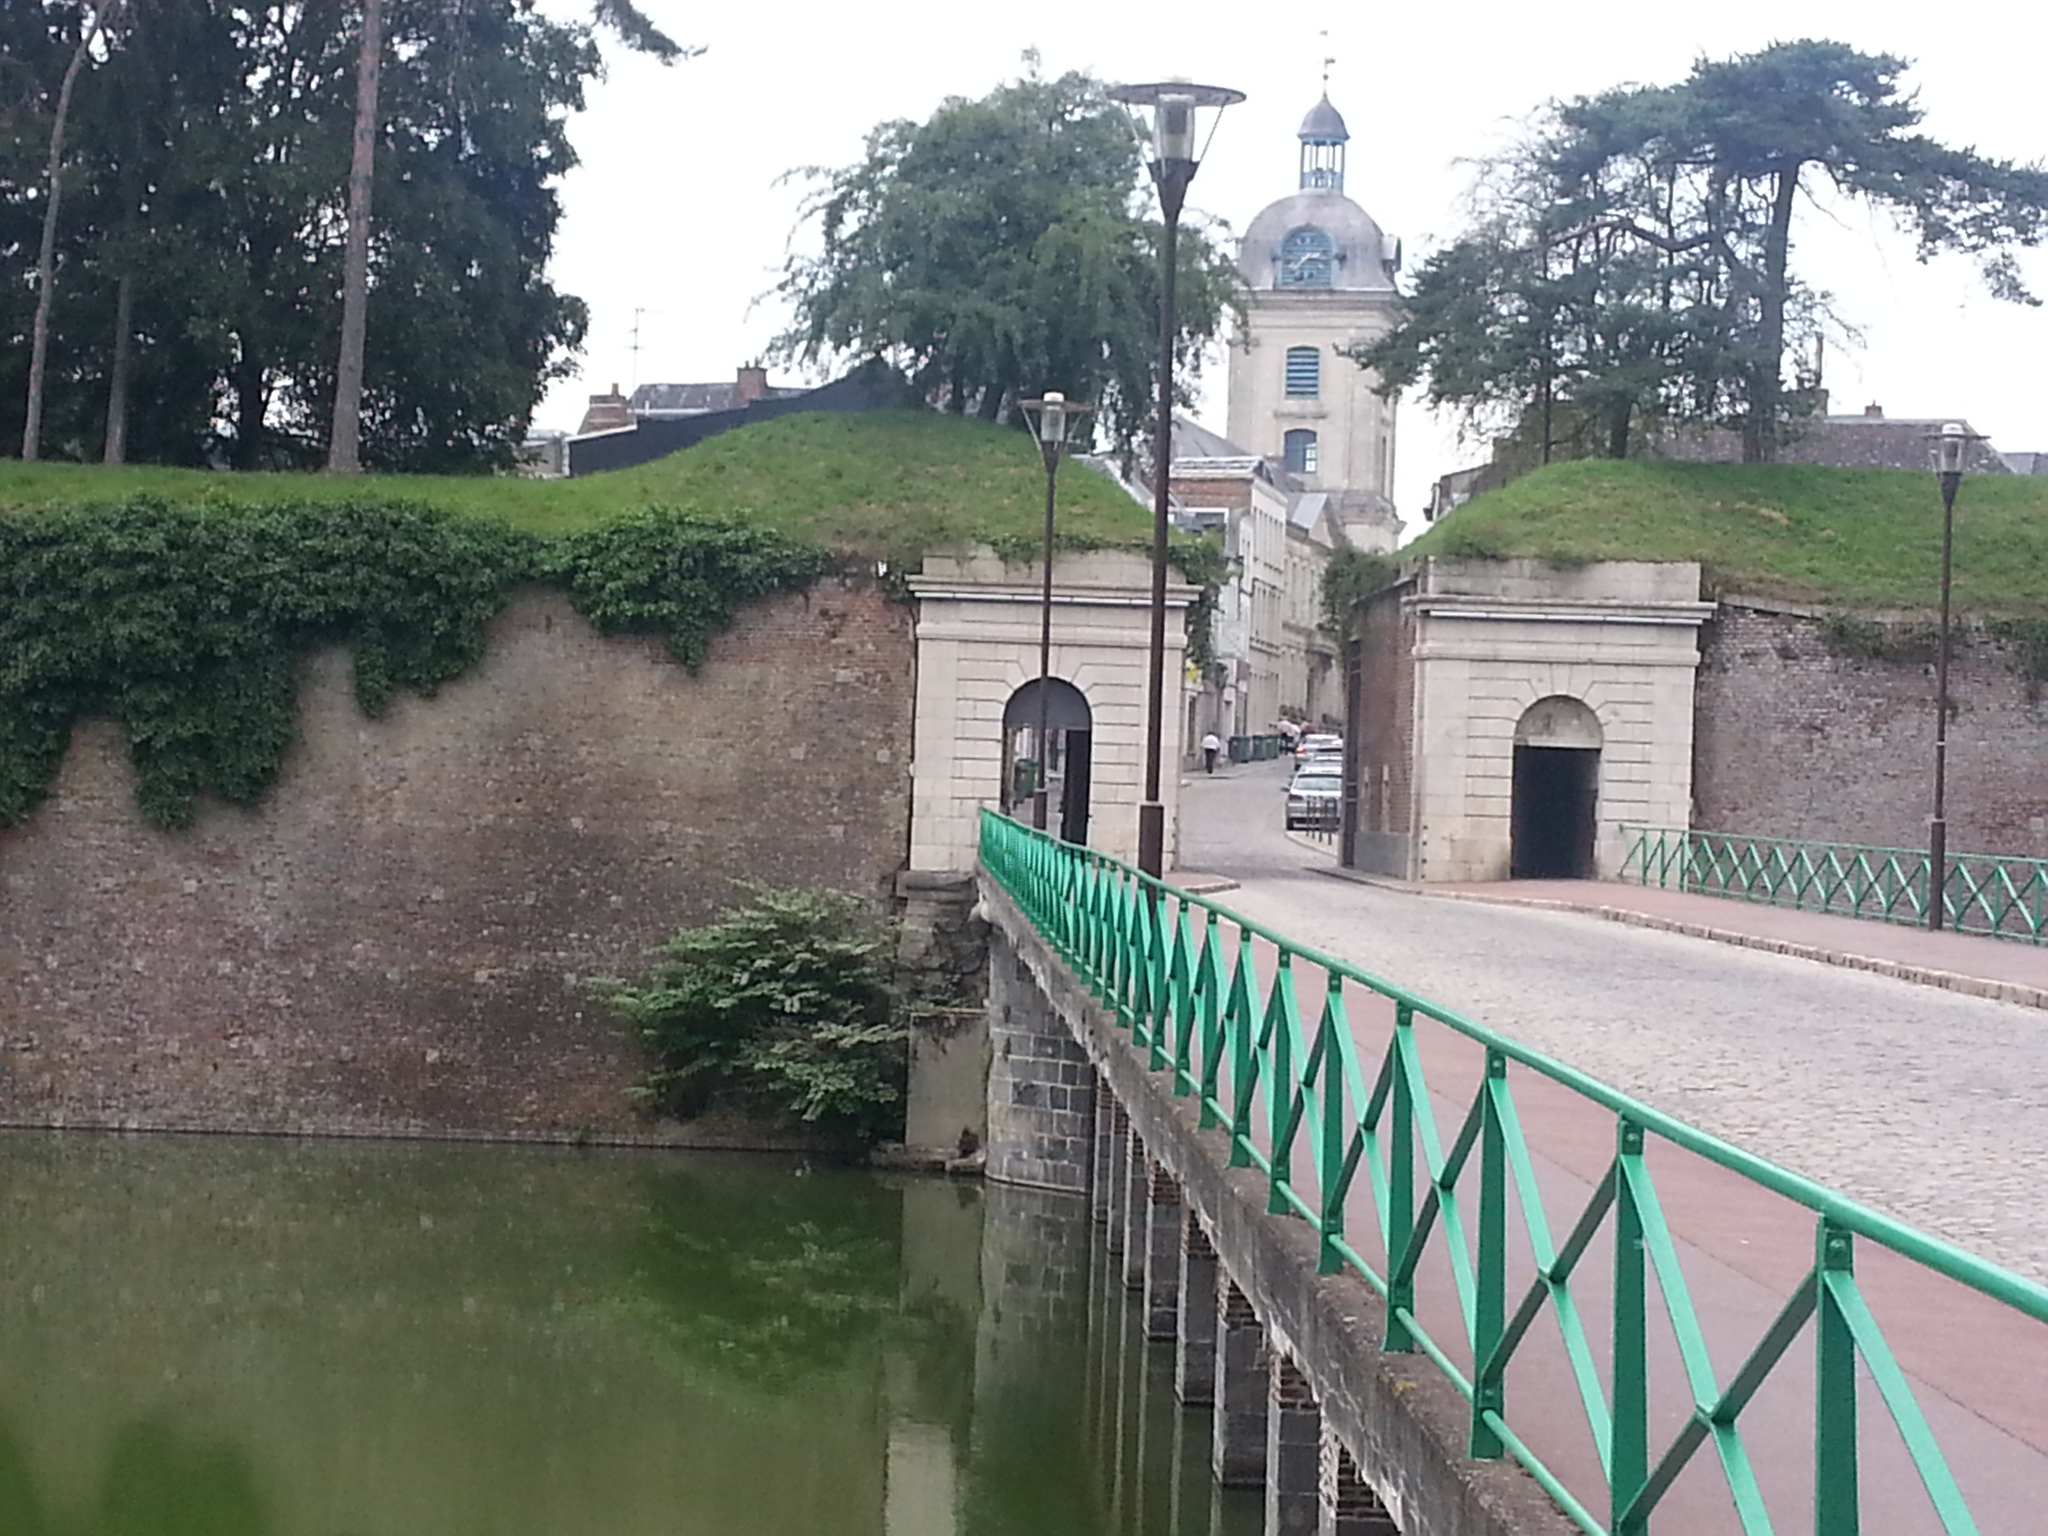 The Fauroeulx gate. part of the fortifications created by Vauban in the seventeenth century, was the only gate in the ramparts of Le Quesnoy not destroyed during World War II.